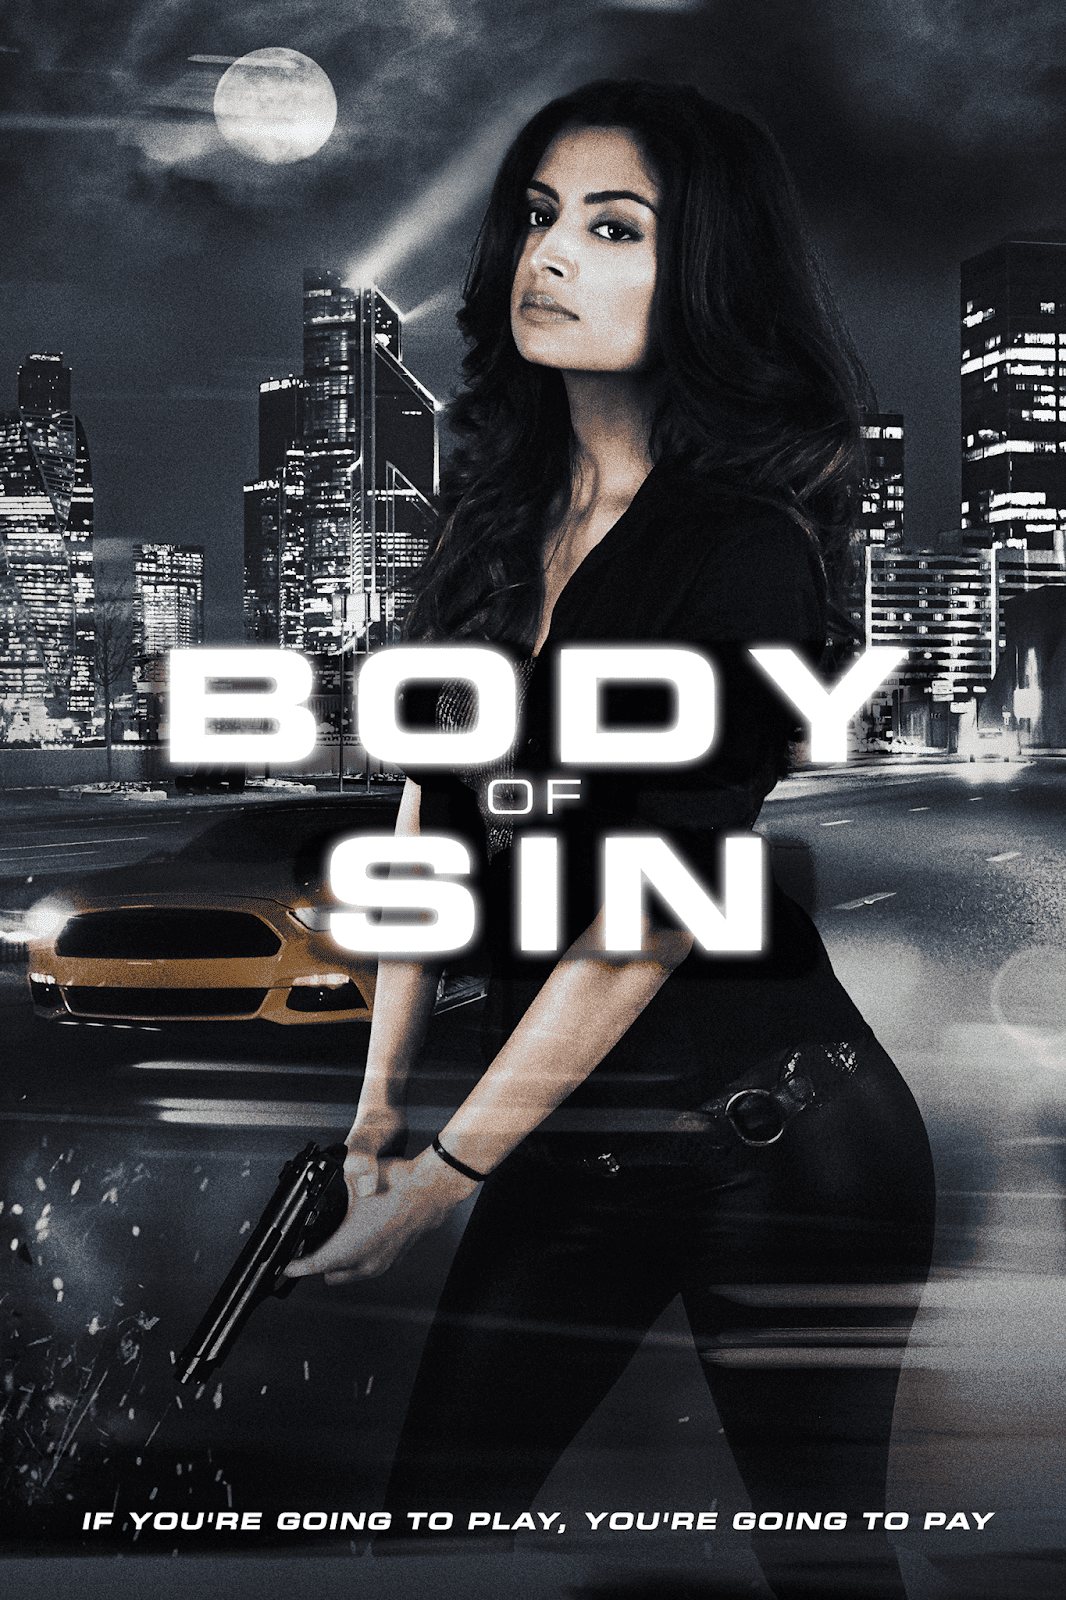 Body of sin movie download 480p, Body of sin movie download 720p, Body of sin movie download 300mb, Body of sin movie download free